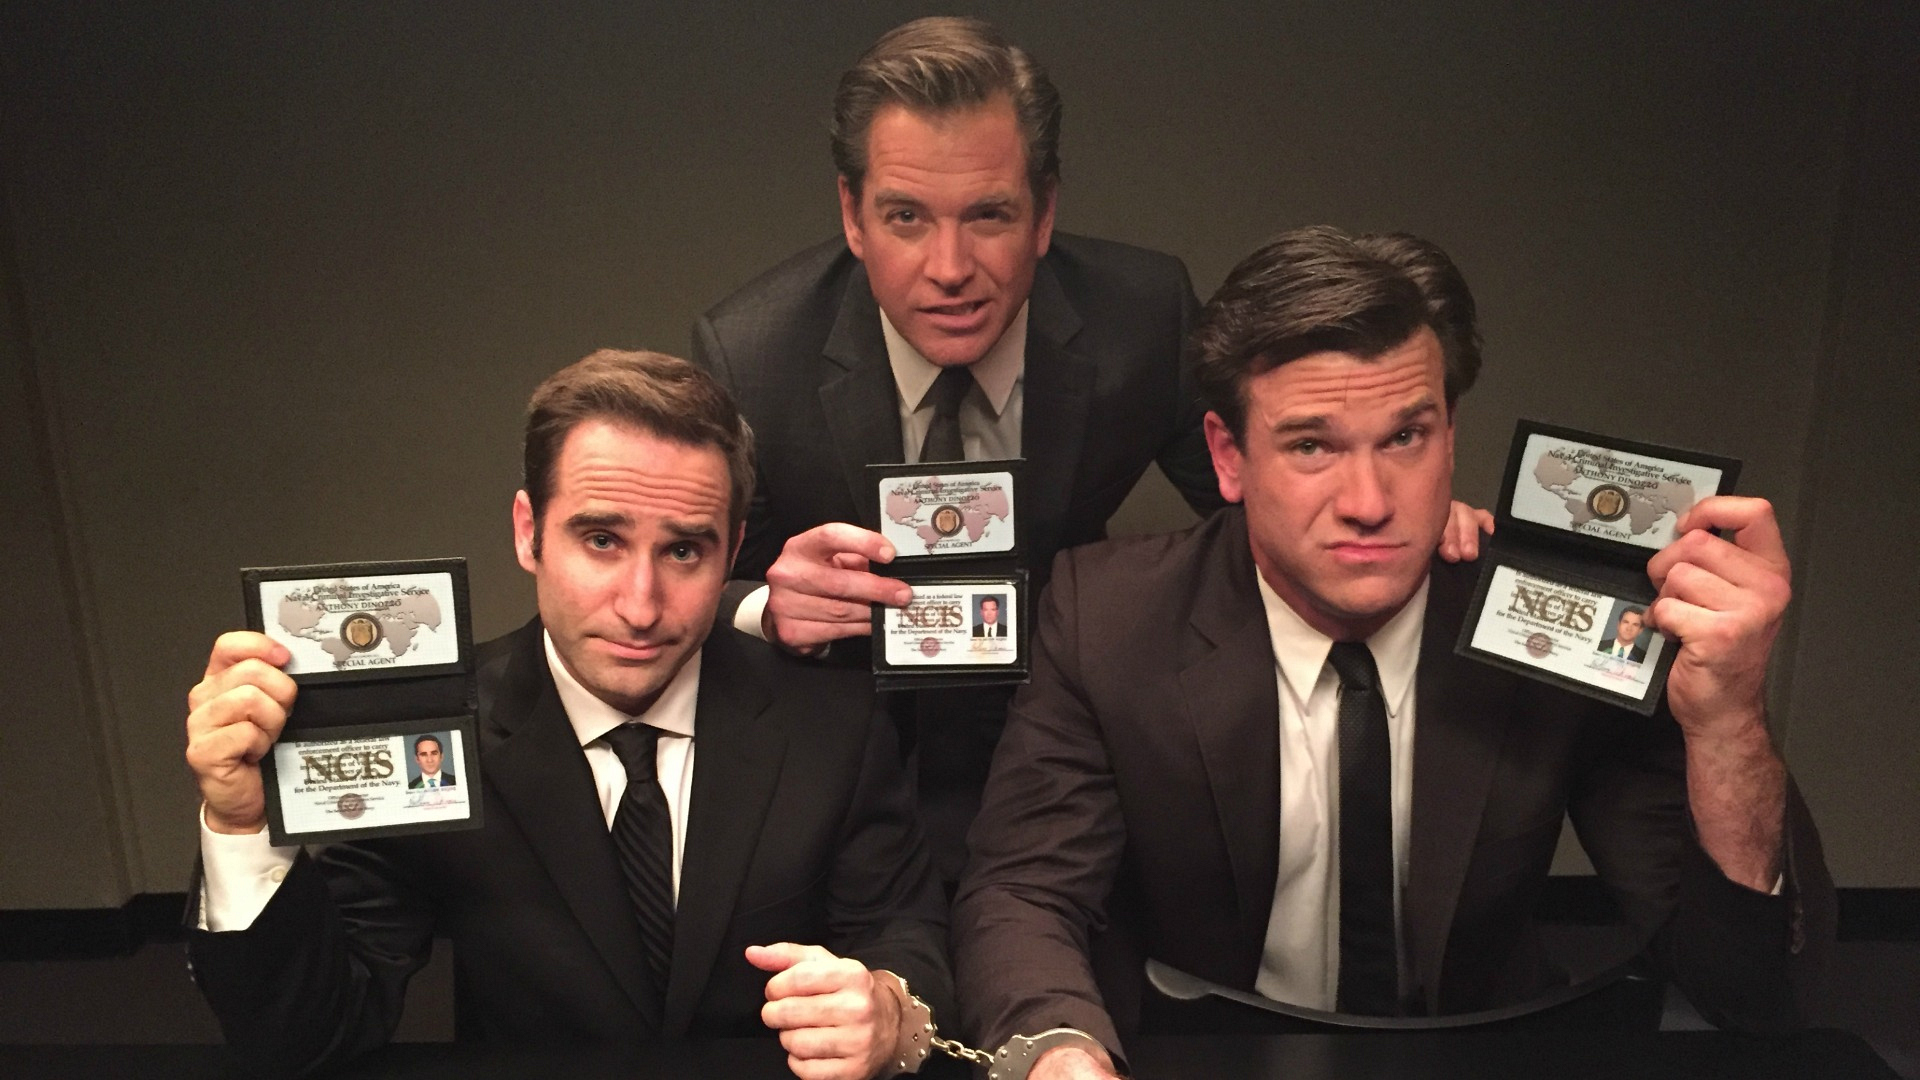 DiNozzo and the Phony Tonys posed for a fun behind-the-scenes shot.